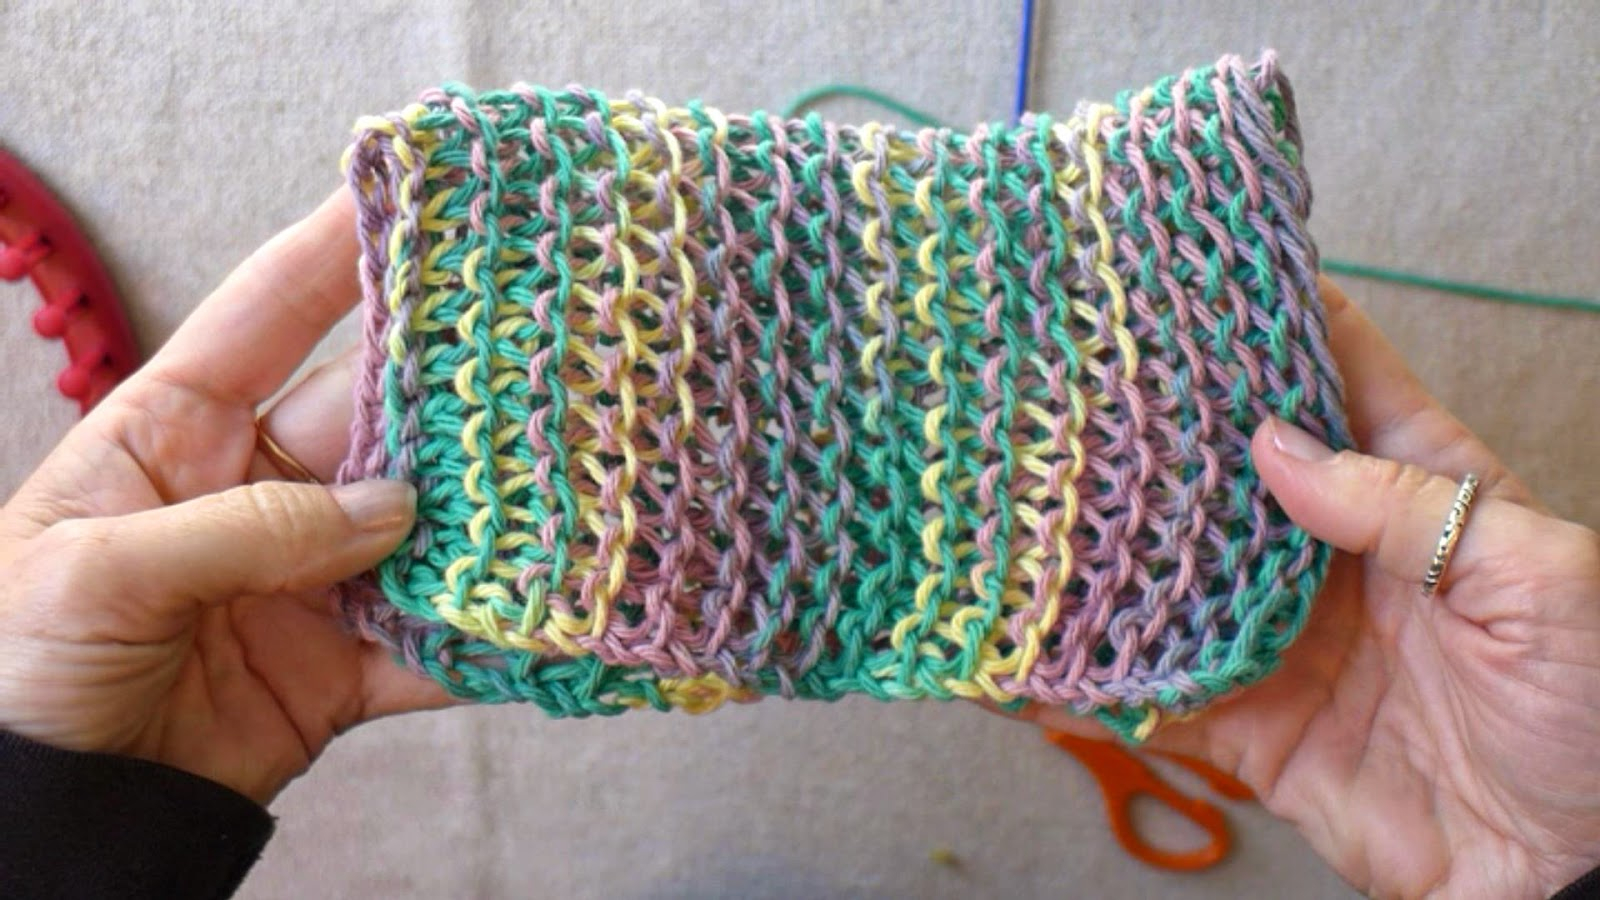 Easy Dishcloth Knit Pattern Easymeworld Learn The Basic Stitches For Loom Knitting Dish Cloths